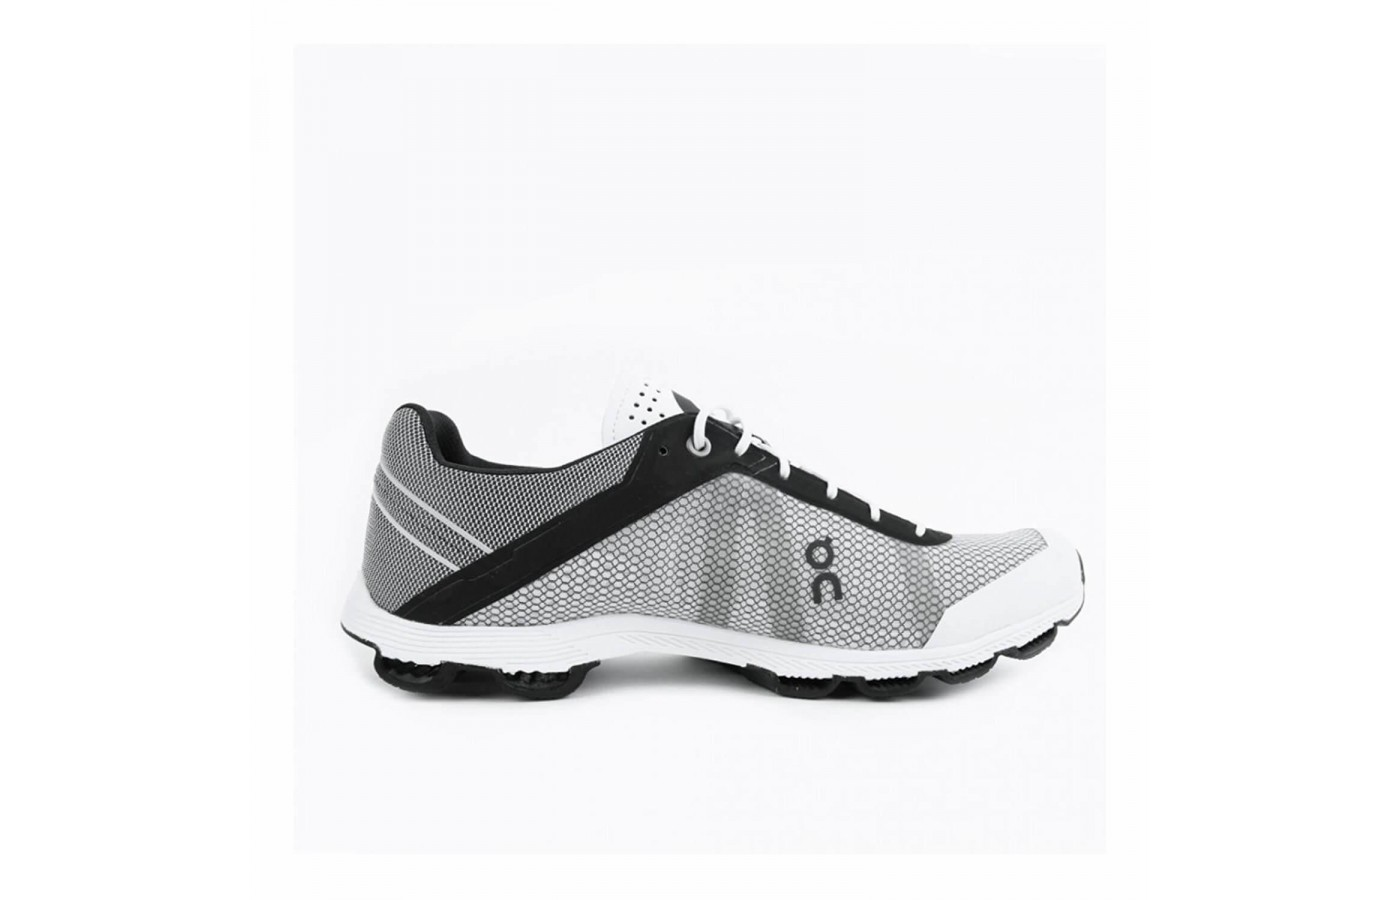 The On Cloudrush has a wafer-thin midsole called a Speedboard.